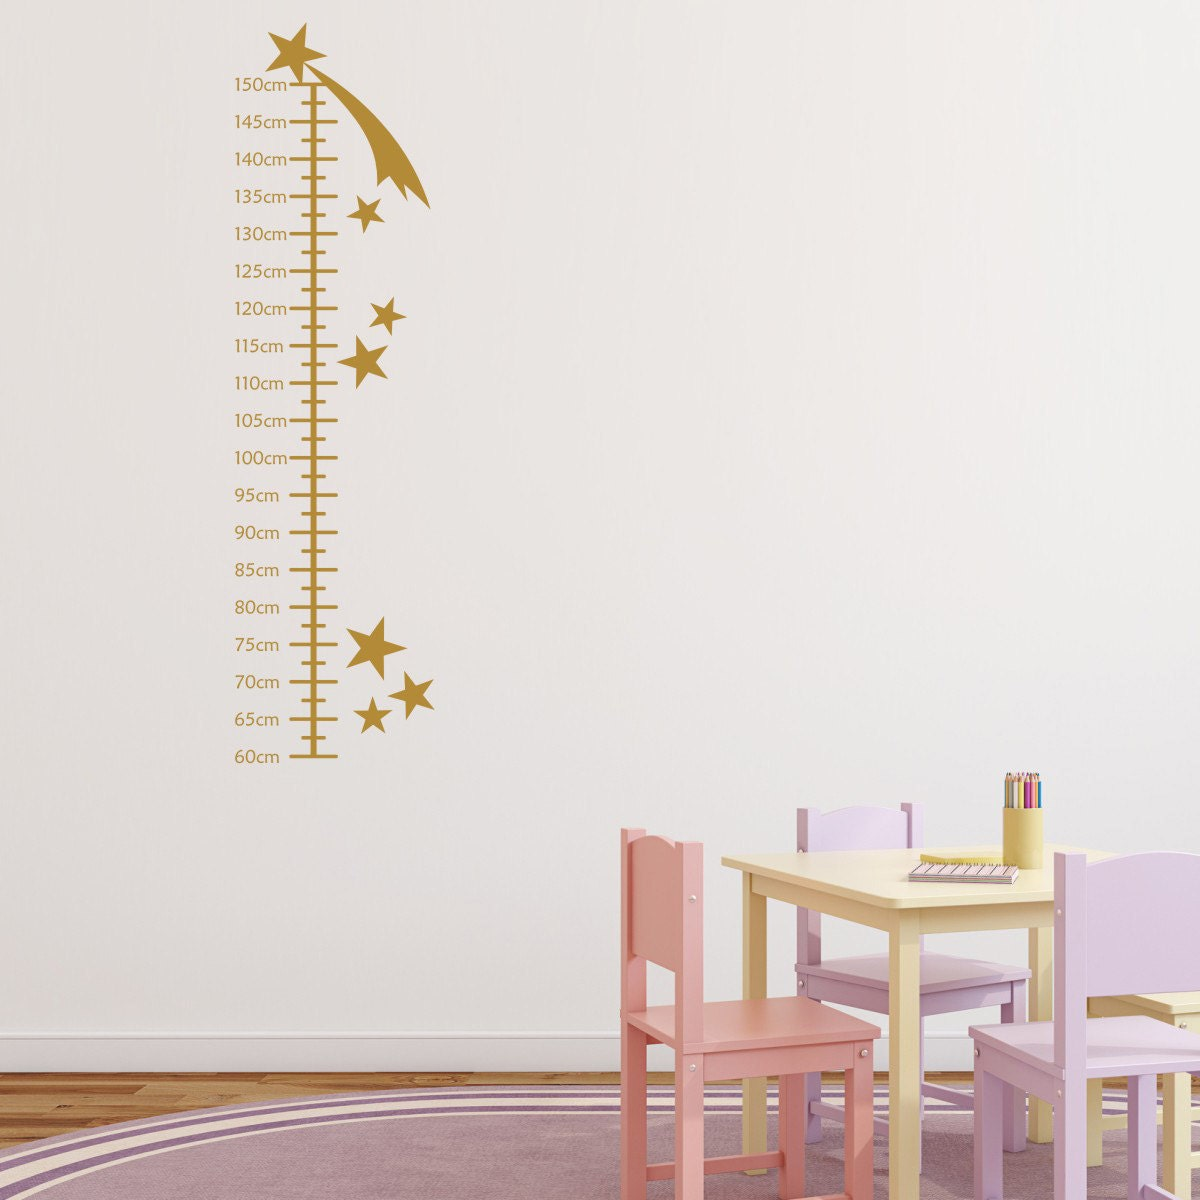 Shooting stars growth chart for children wall sticker height description make measuring your little childs height fun with our shooting stars growth chart wall sticker geenschuldenfo Image collections